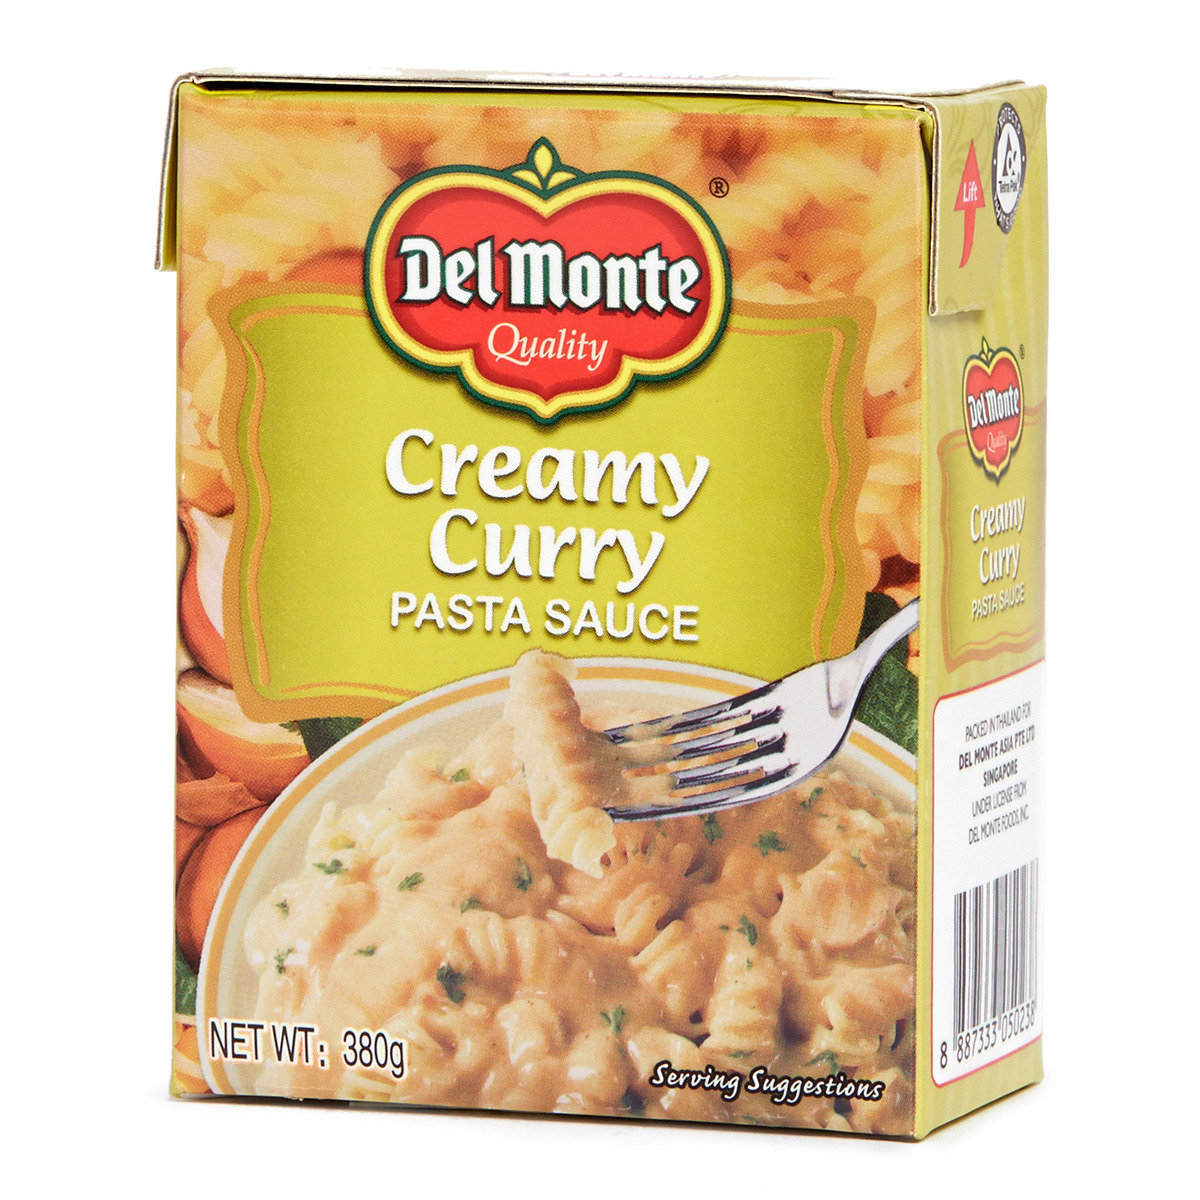 Creamy Curry Pasta Sauce